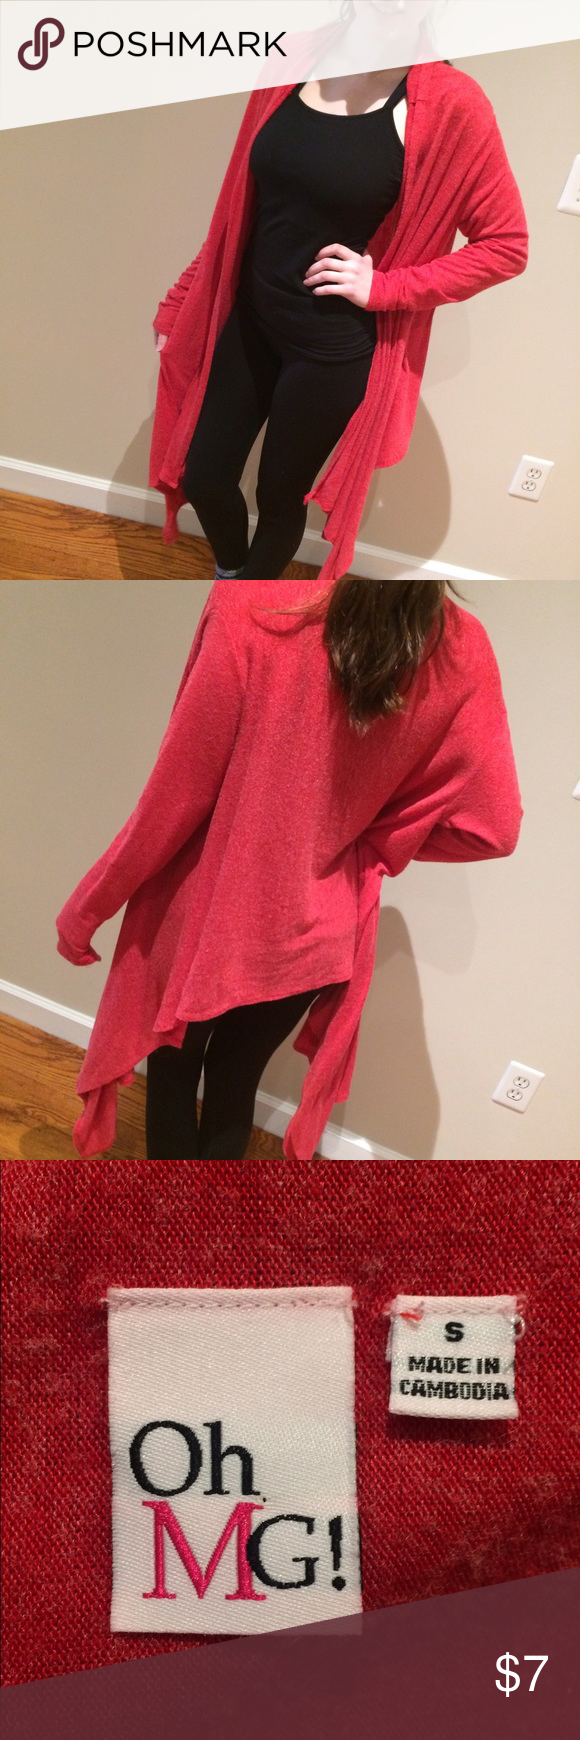 Asymmetrical Cardi by OMG! Asymmetrical Cardi in red by OMG! Flirty, soft and fun, this fine knit Cardi is lighter weight and is shorter in the back. Great when paired with boots and leggings! In great pre owned condition! Machine wash. Sweaters Cardigans